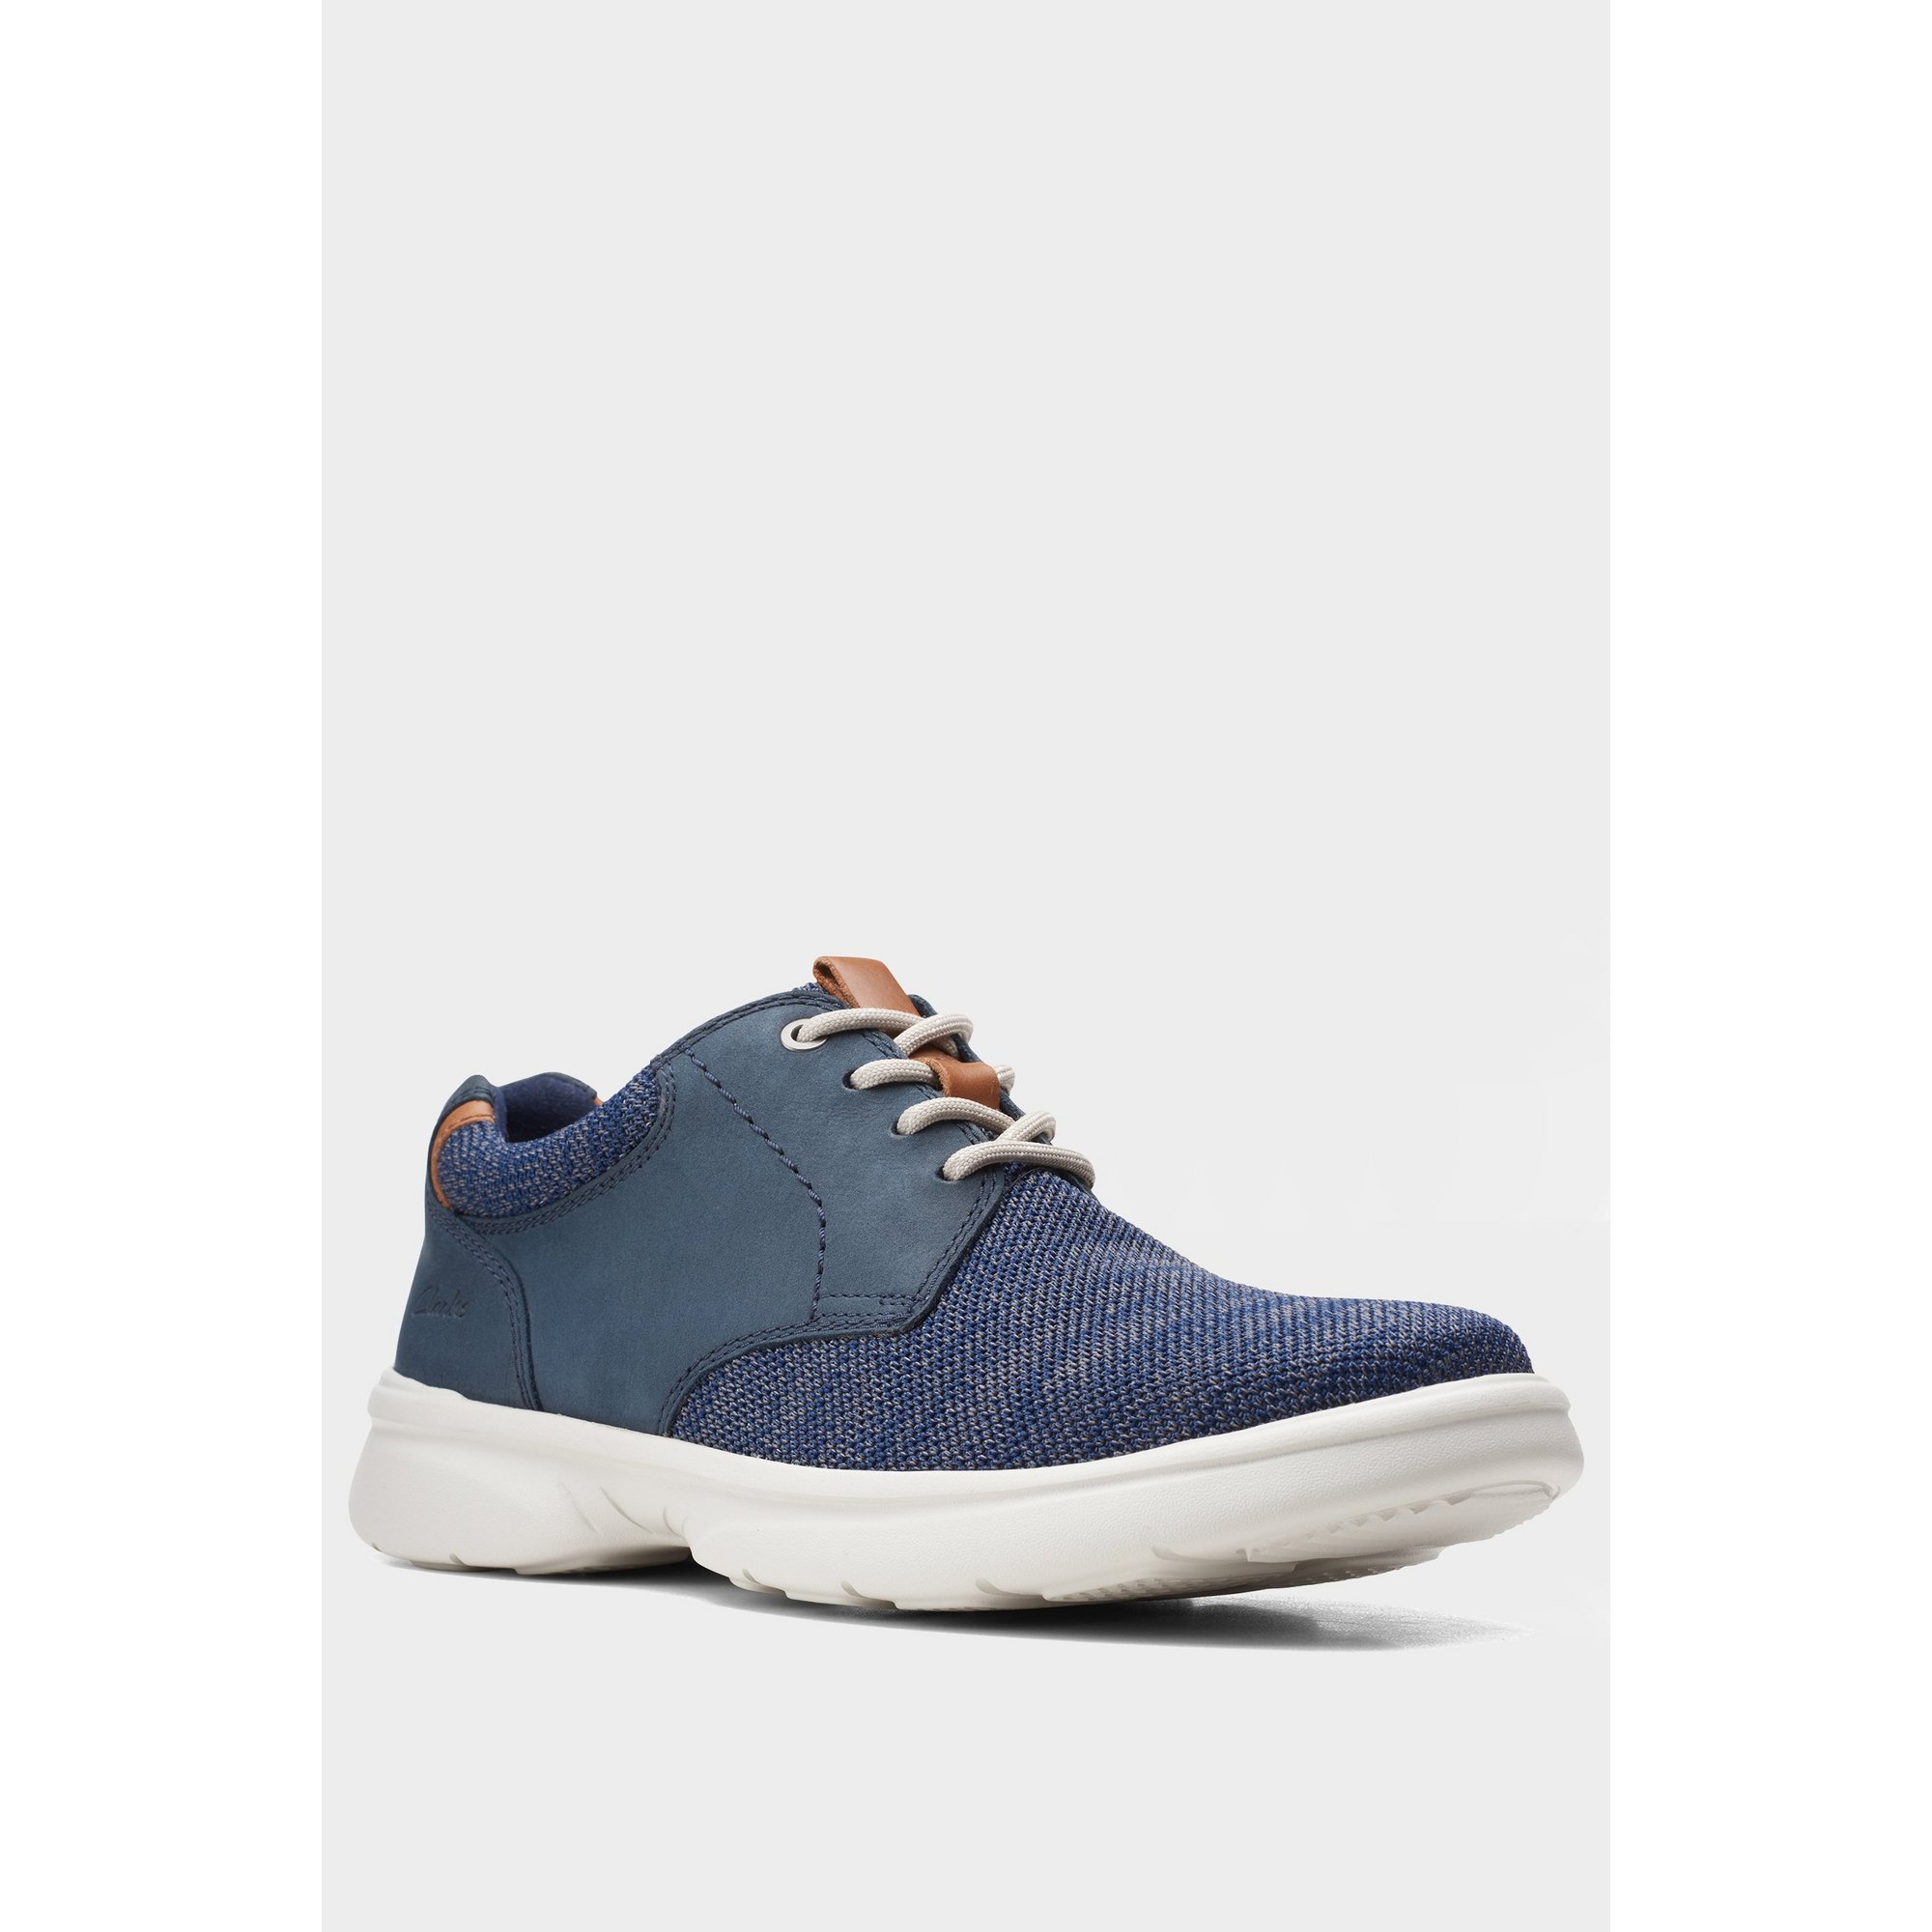 Image of Clarks Bradley Lane Lace Up Navy Shoes